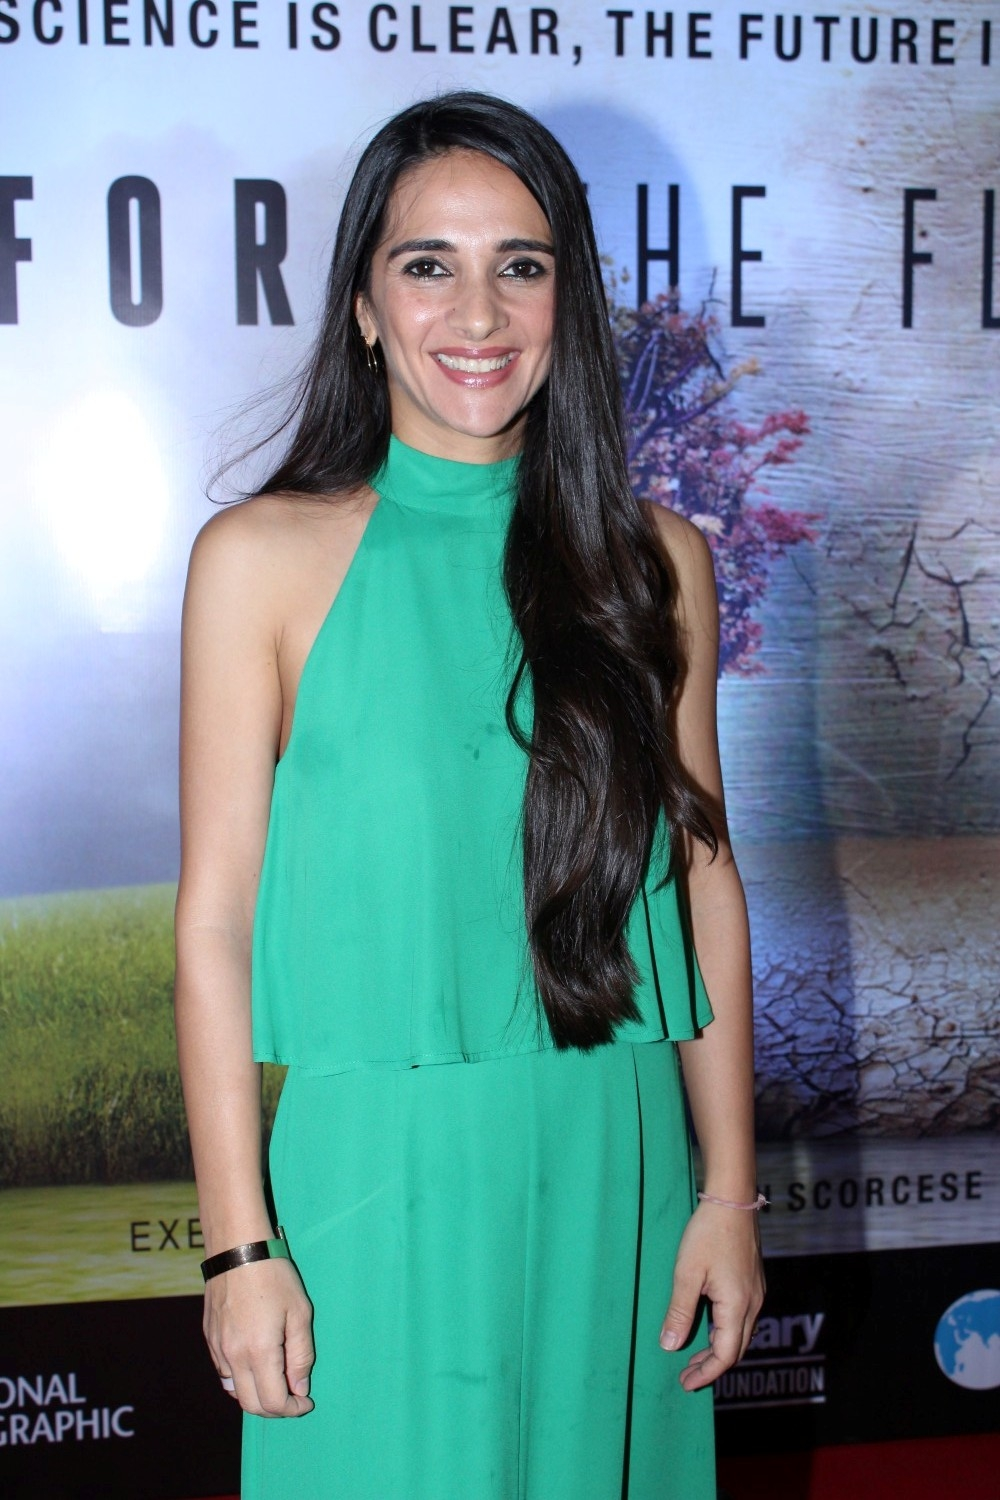 Mumbai: Actress Tara Sharma during the screening of Leonardo DiCaprio-starring climate change documentary Before the Flood in Mumbai on Jan 23, 2017. (Photo: IANS)